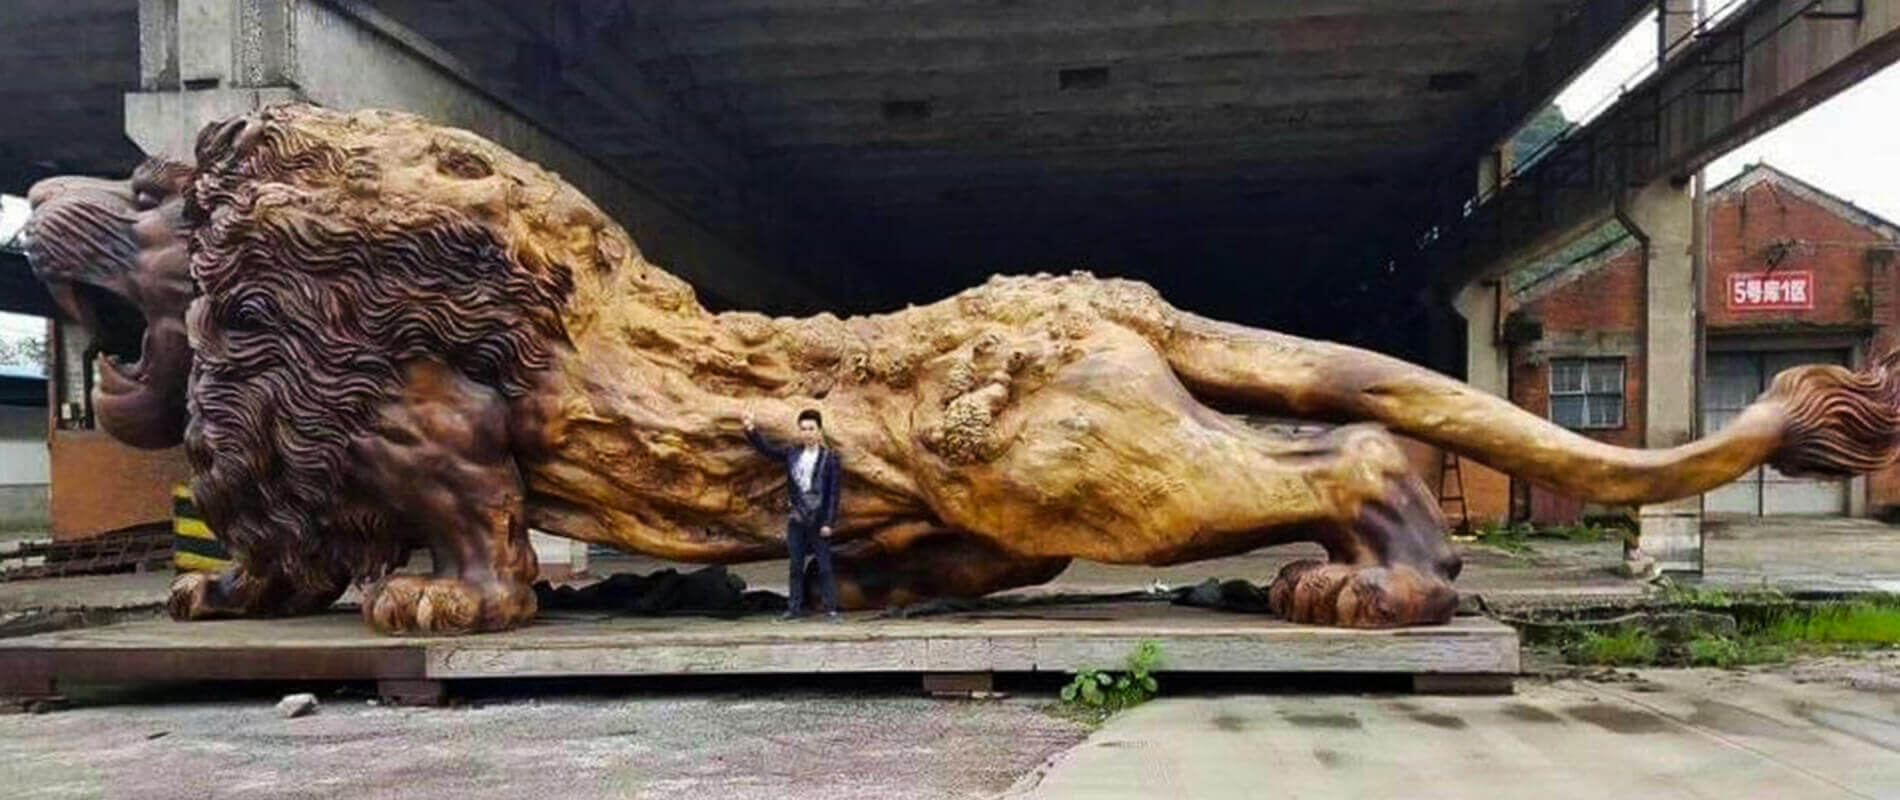 Oriental Lion, the largest wooden sculpture in the world